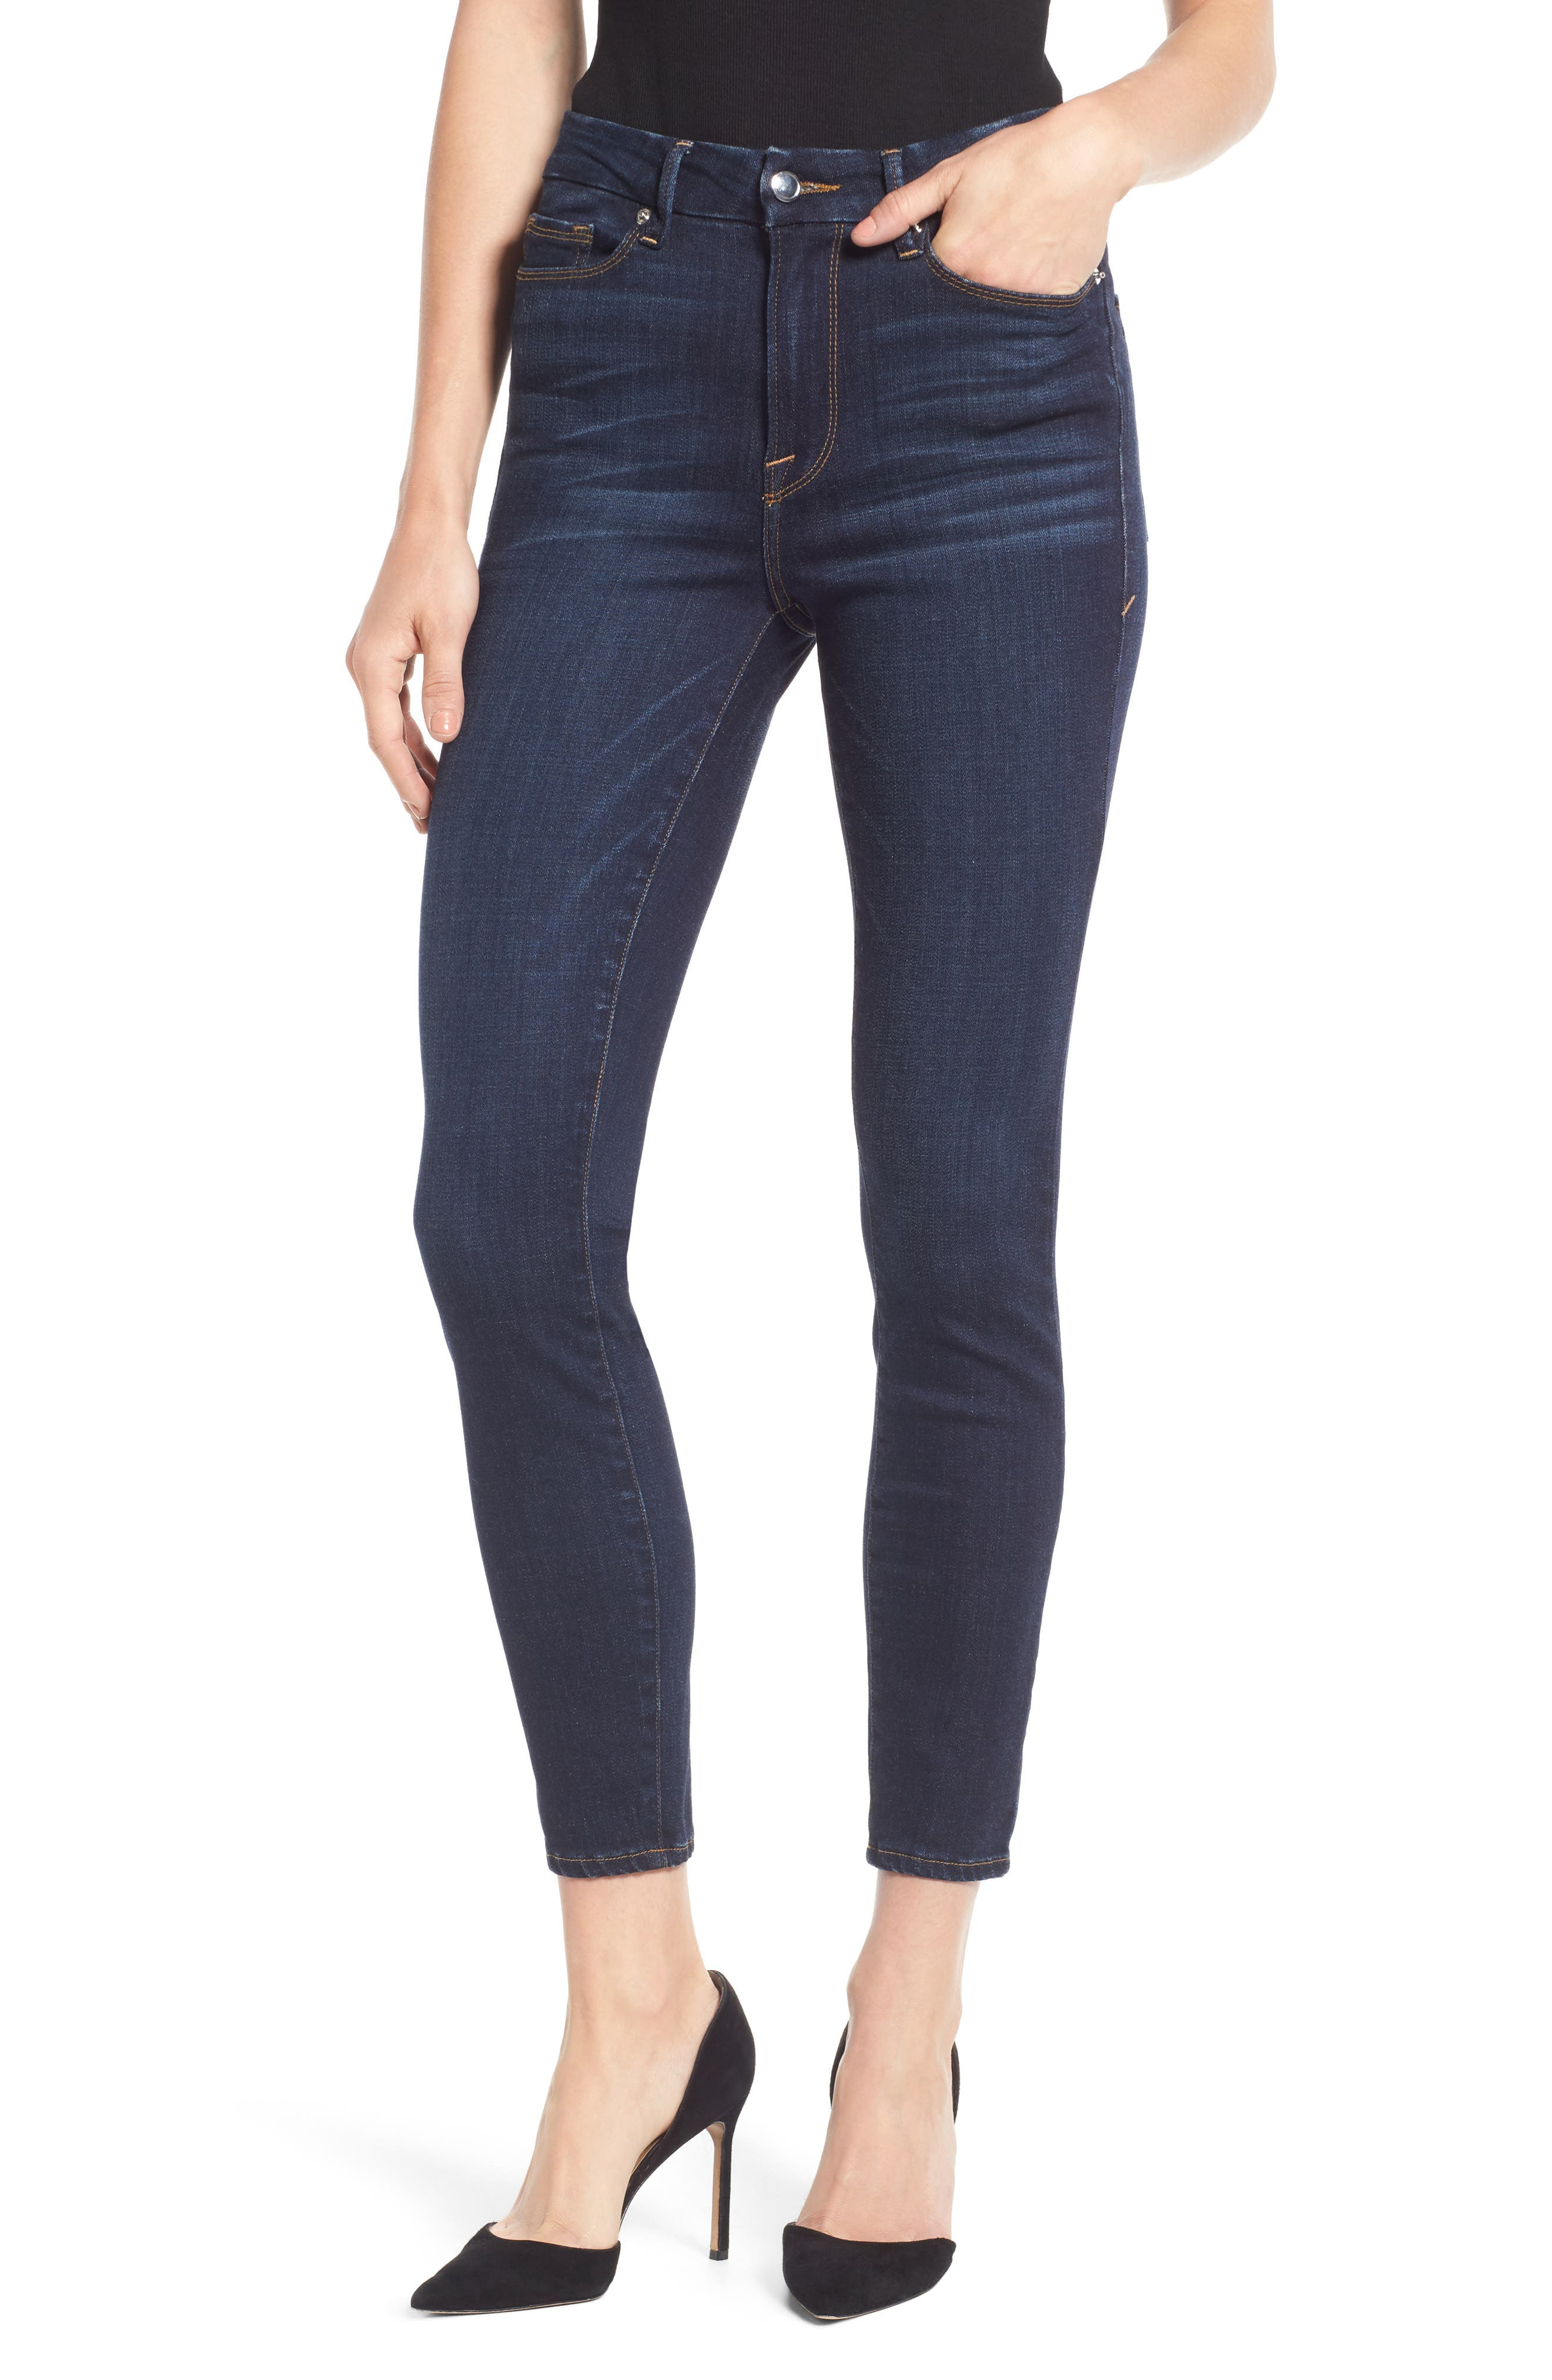 Alternate Image 1 Selected - Good American Good Legs High Waist Ankle Skinny Jeans (Extended Sizes)